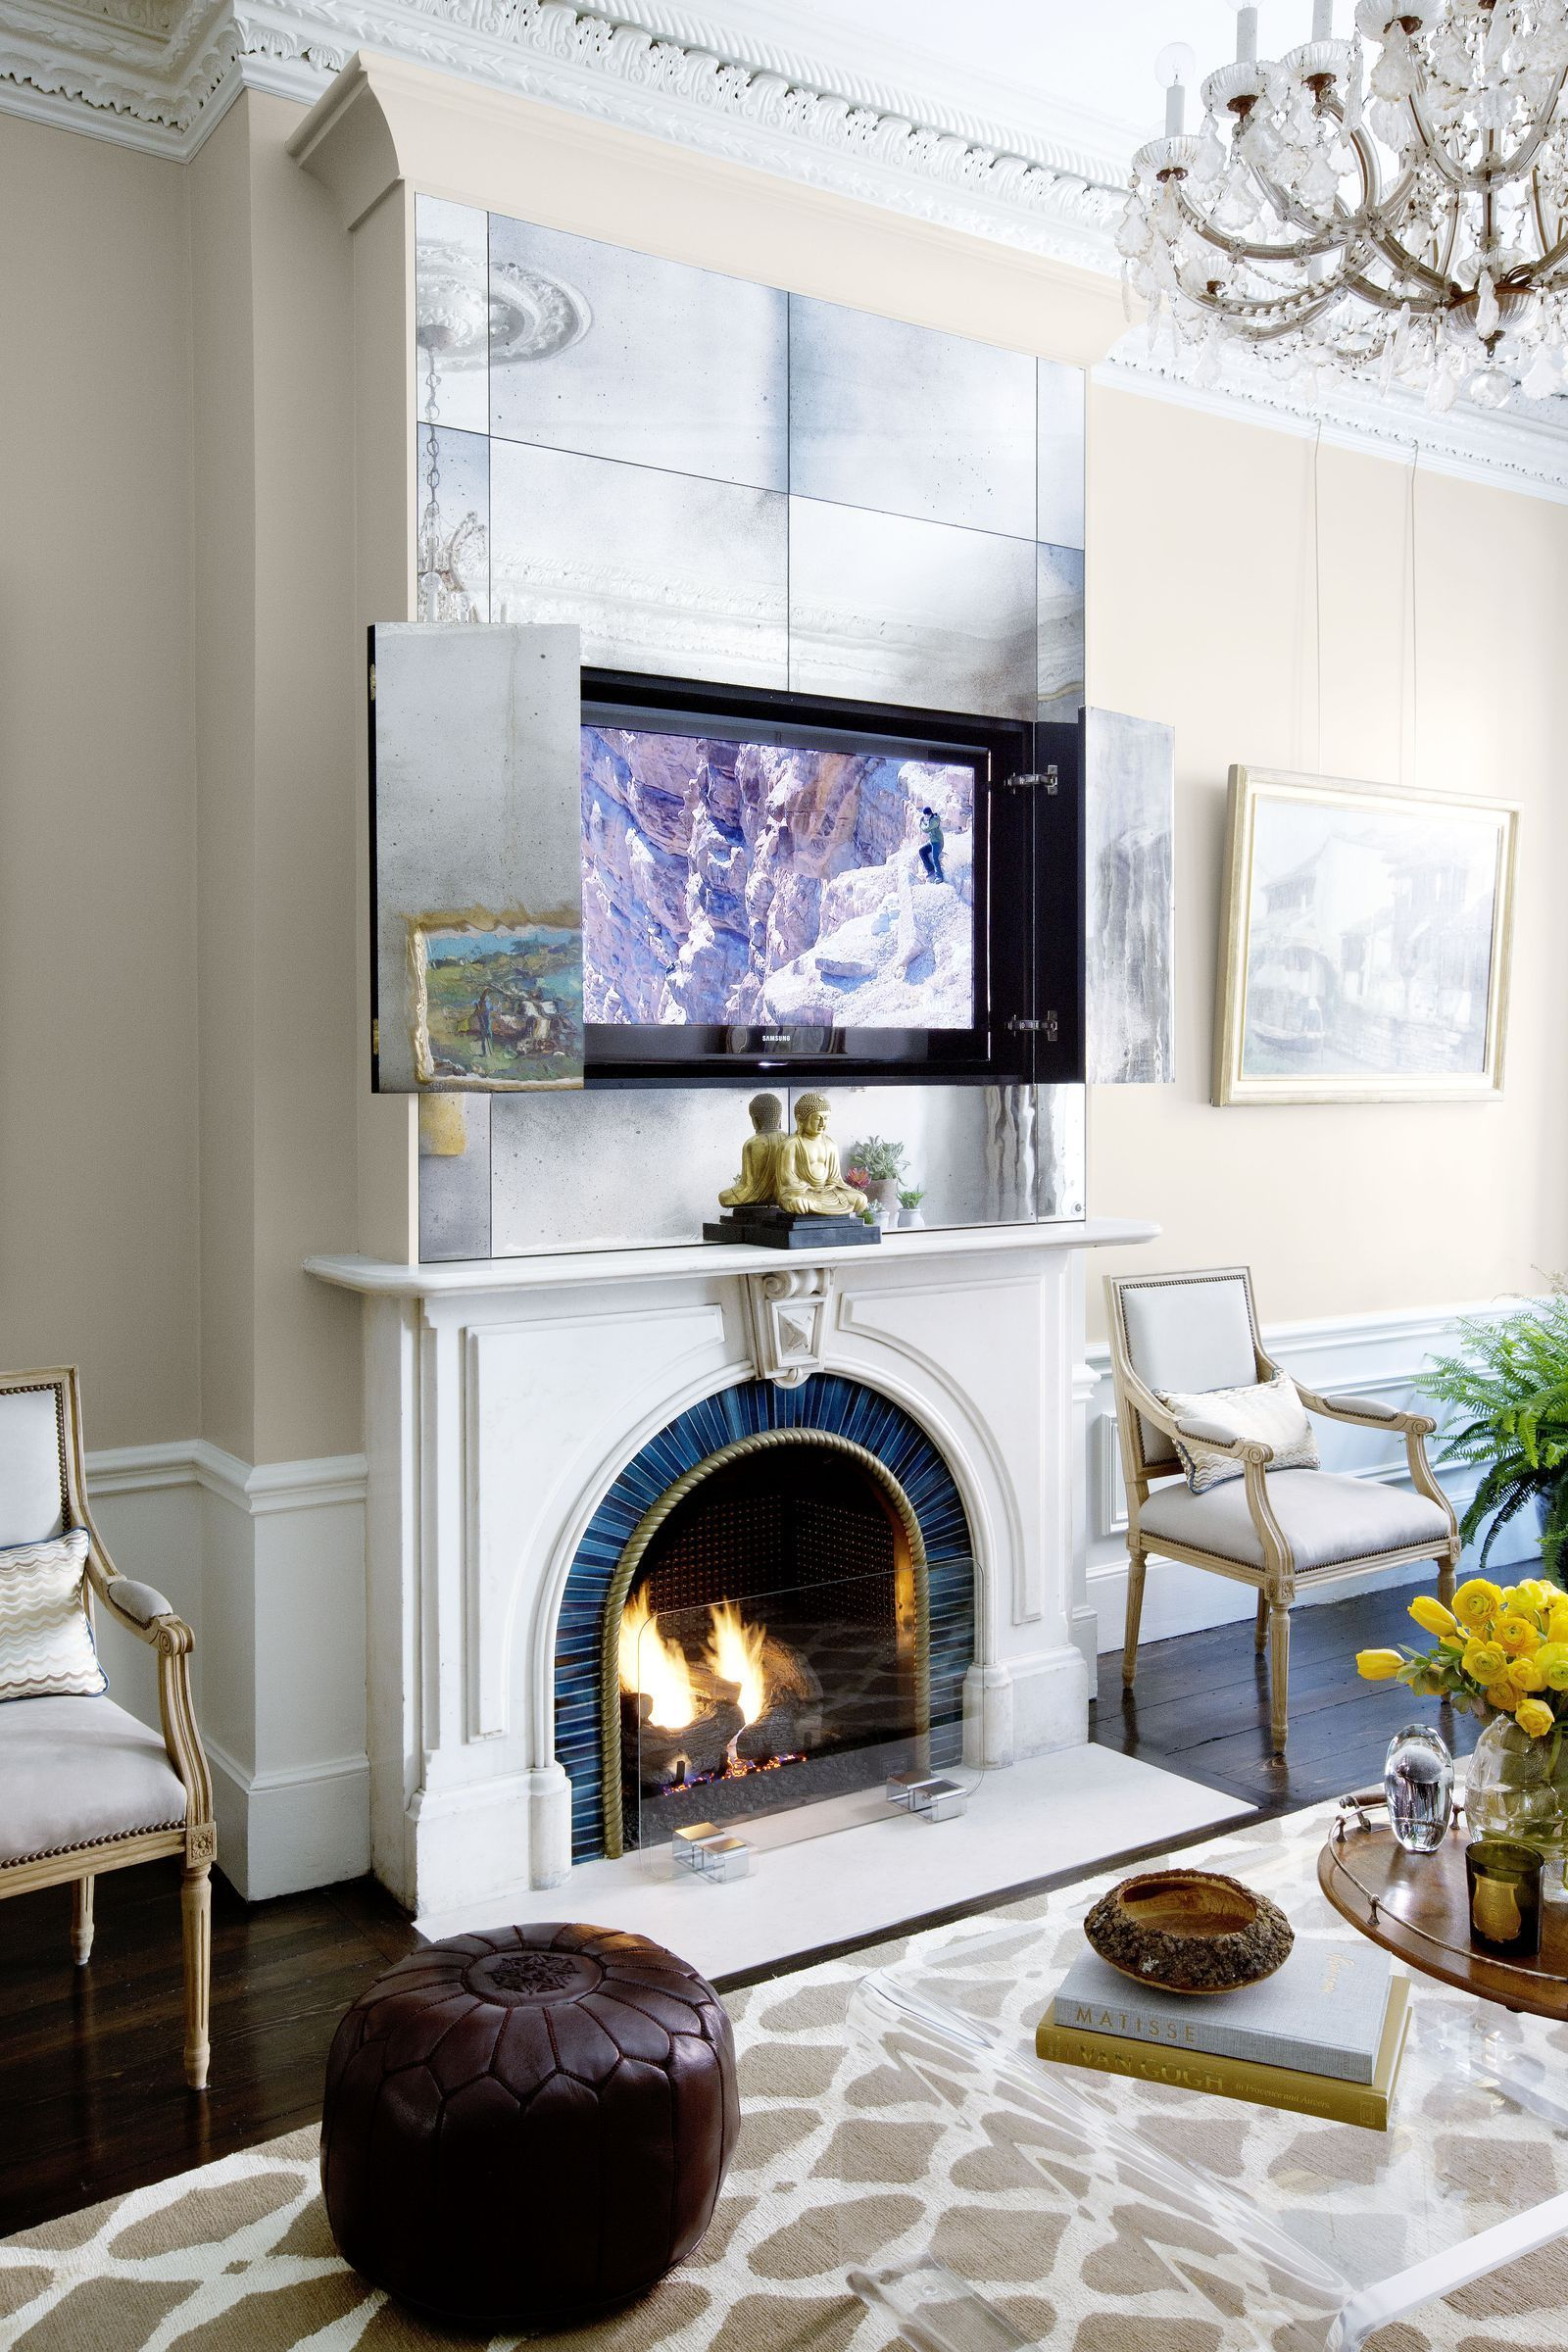 Designer Nina Farmer Took The Most Elegant Approach Possible Hiding Her Tv In A Custom Mirrored Cabinet Atop The Mantel The Living Room Needed A Co Keuken Hal